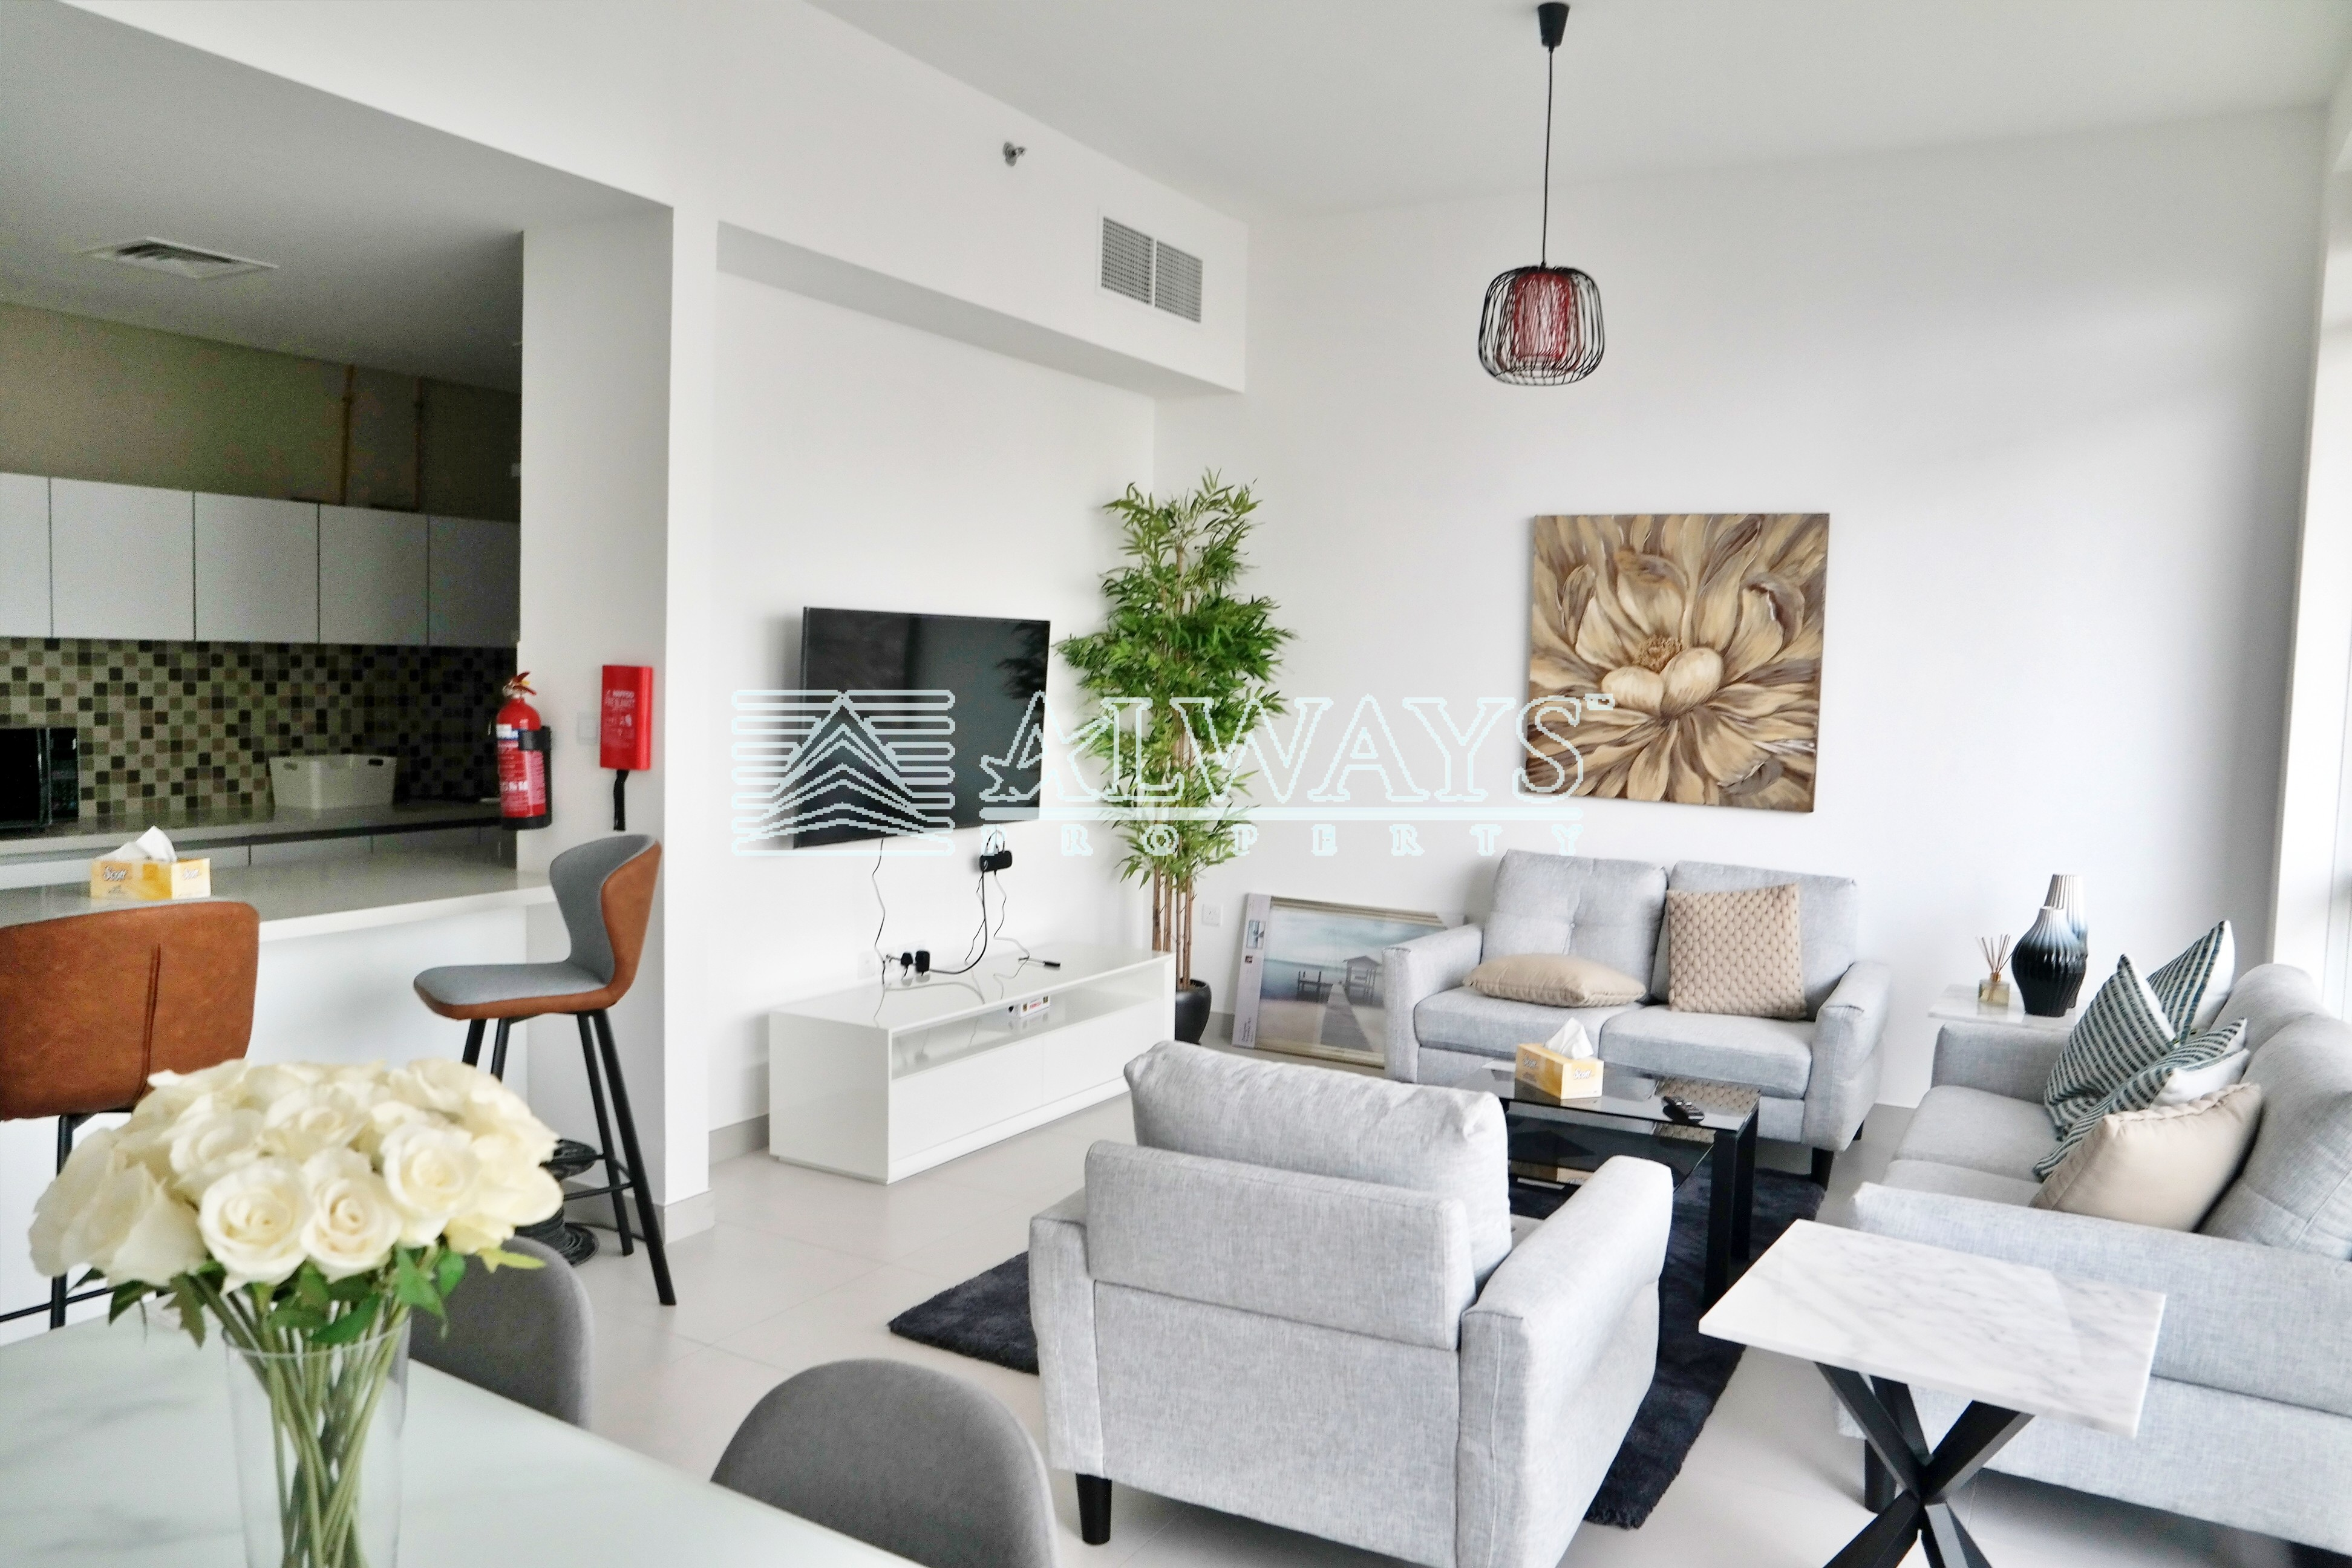 Plus 1Month Free Rent | Brand New 2BR | Hotel View